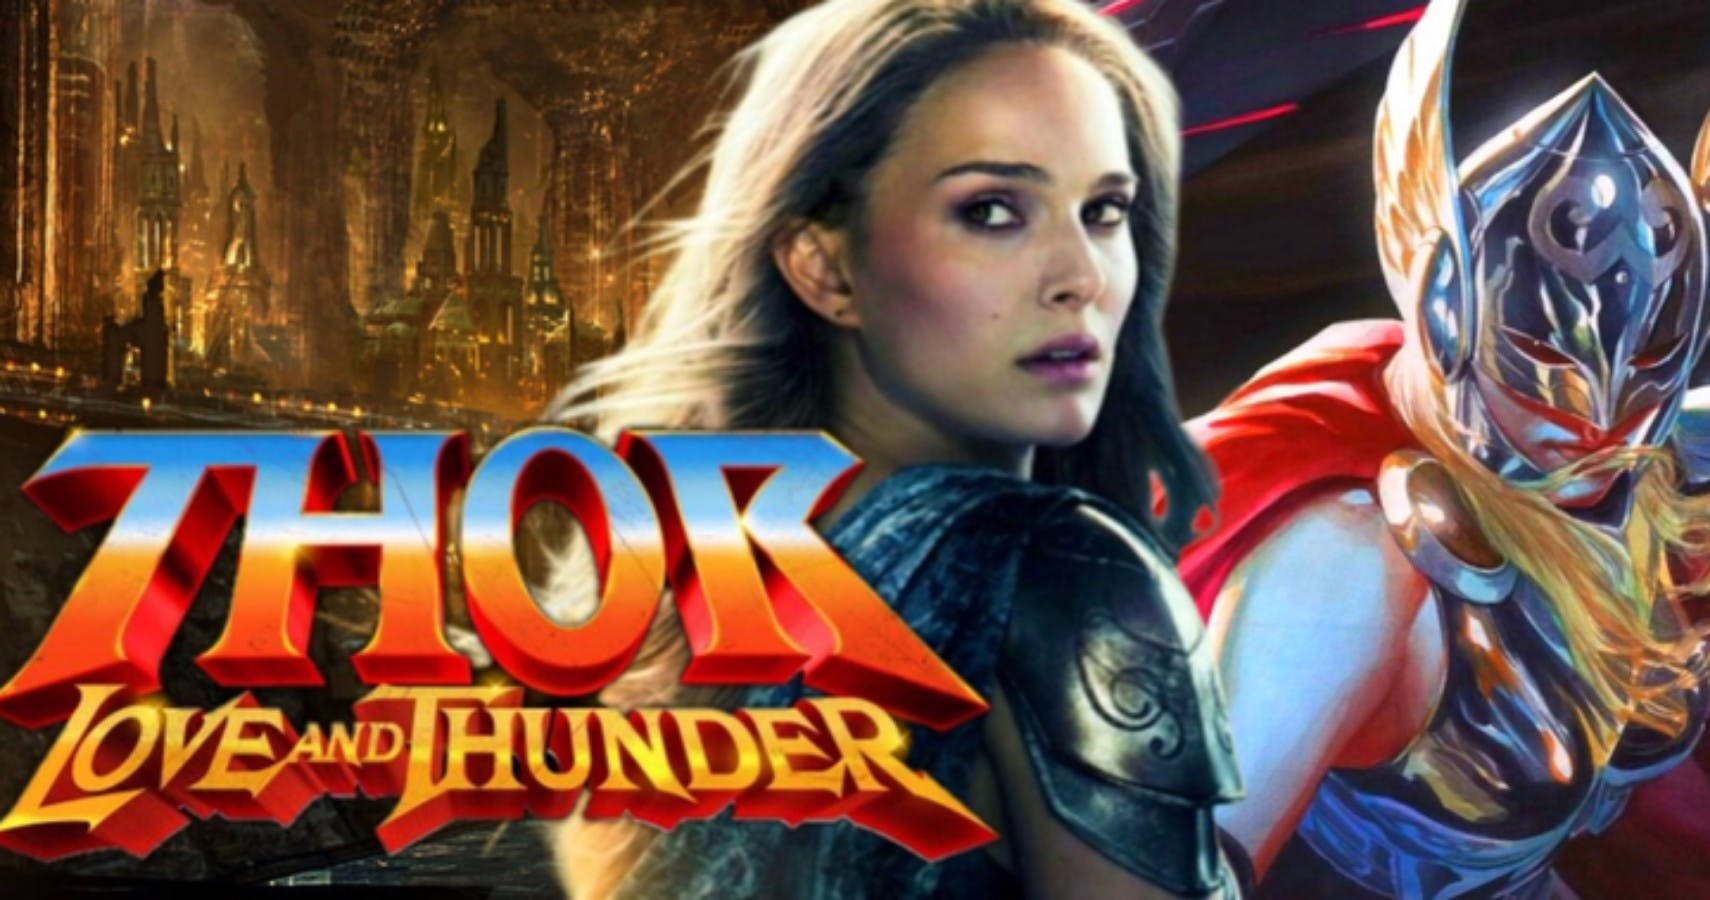 Thor: Love And Thunder- Here's Everything We Know About This Upcoming MCU Movie